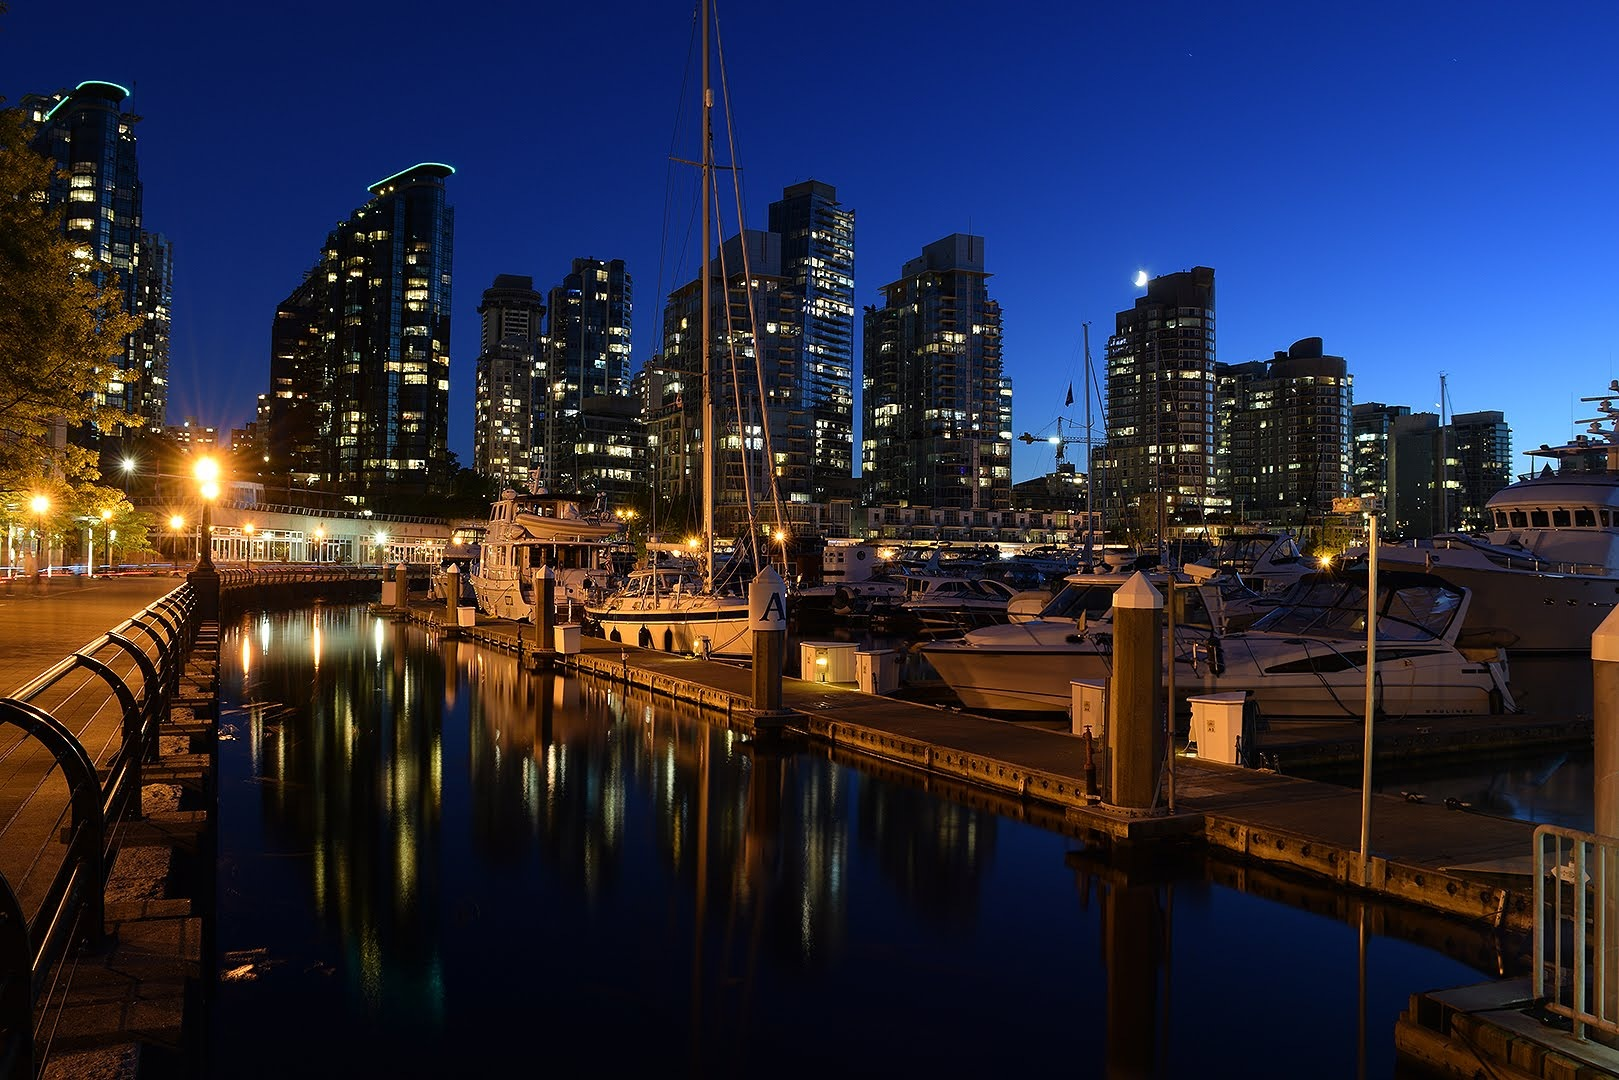 Coal Harbour at night Vancouver, BC, Canada by #gregozphotos